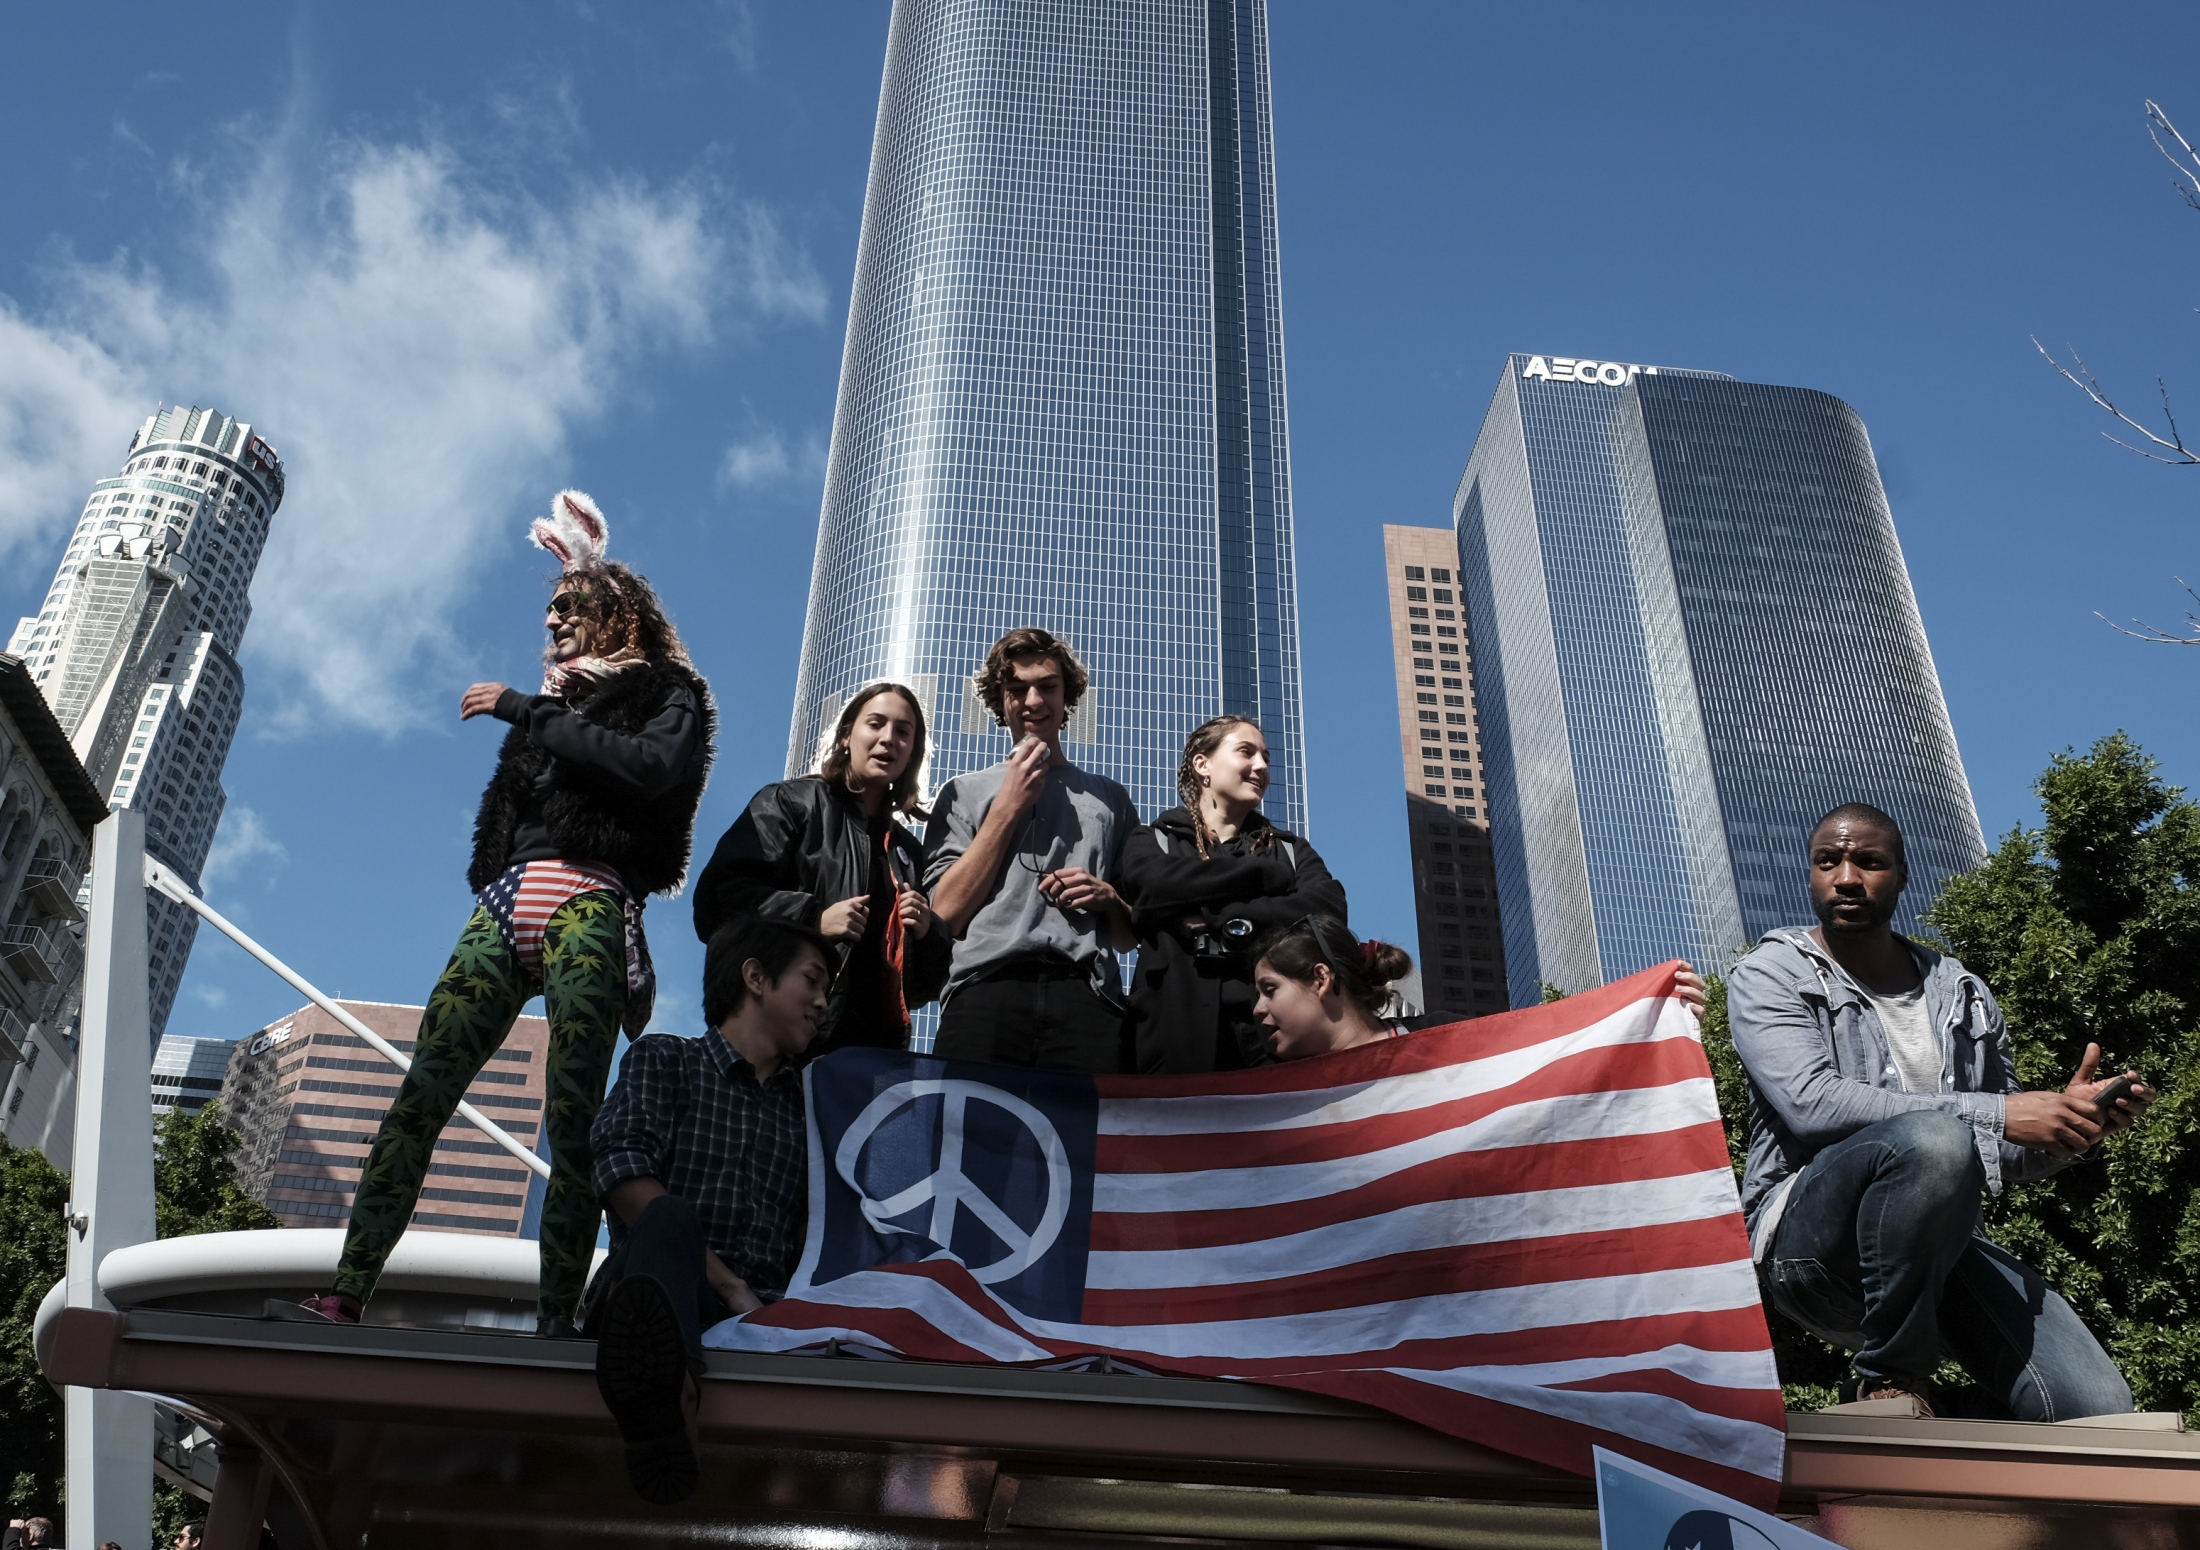 Participants sit on top of a bus stop during the Women's March on January 21, 2017 in Los Angeles, California. Tens of thousands of people took to the streets of Downtown Los Angeles for the Women's March in protest after the inauguration of President Donald Trump. Women's Marches are being held in cities around the world.